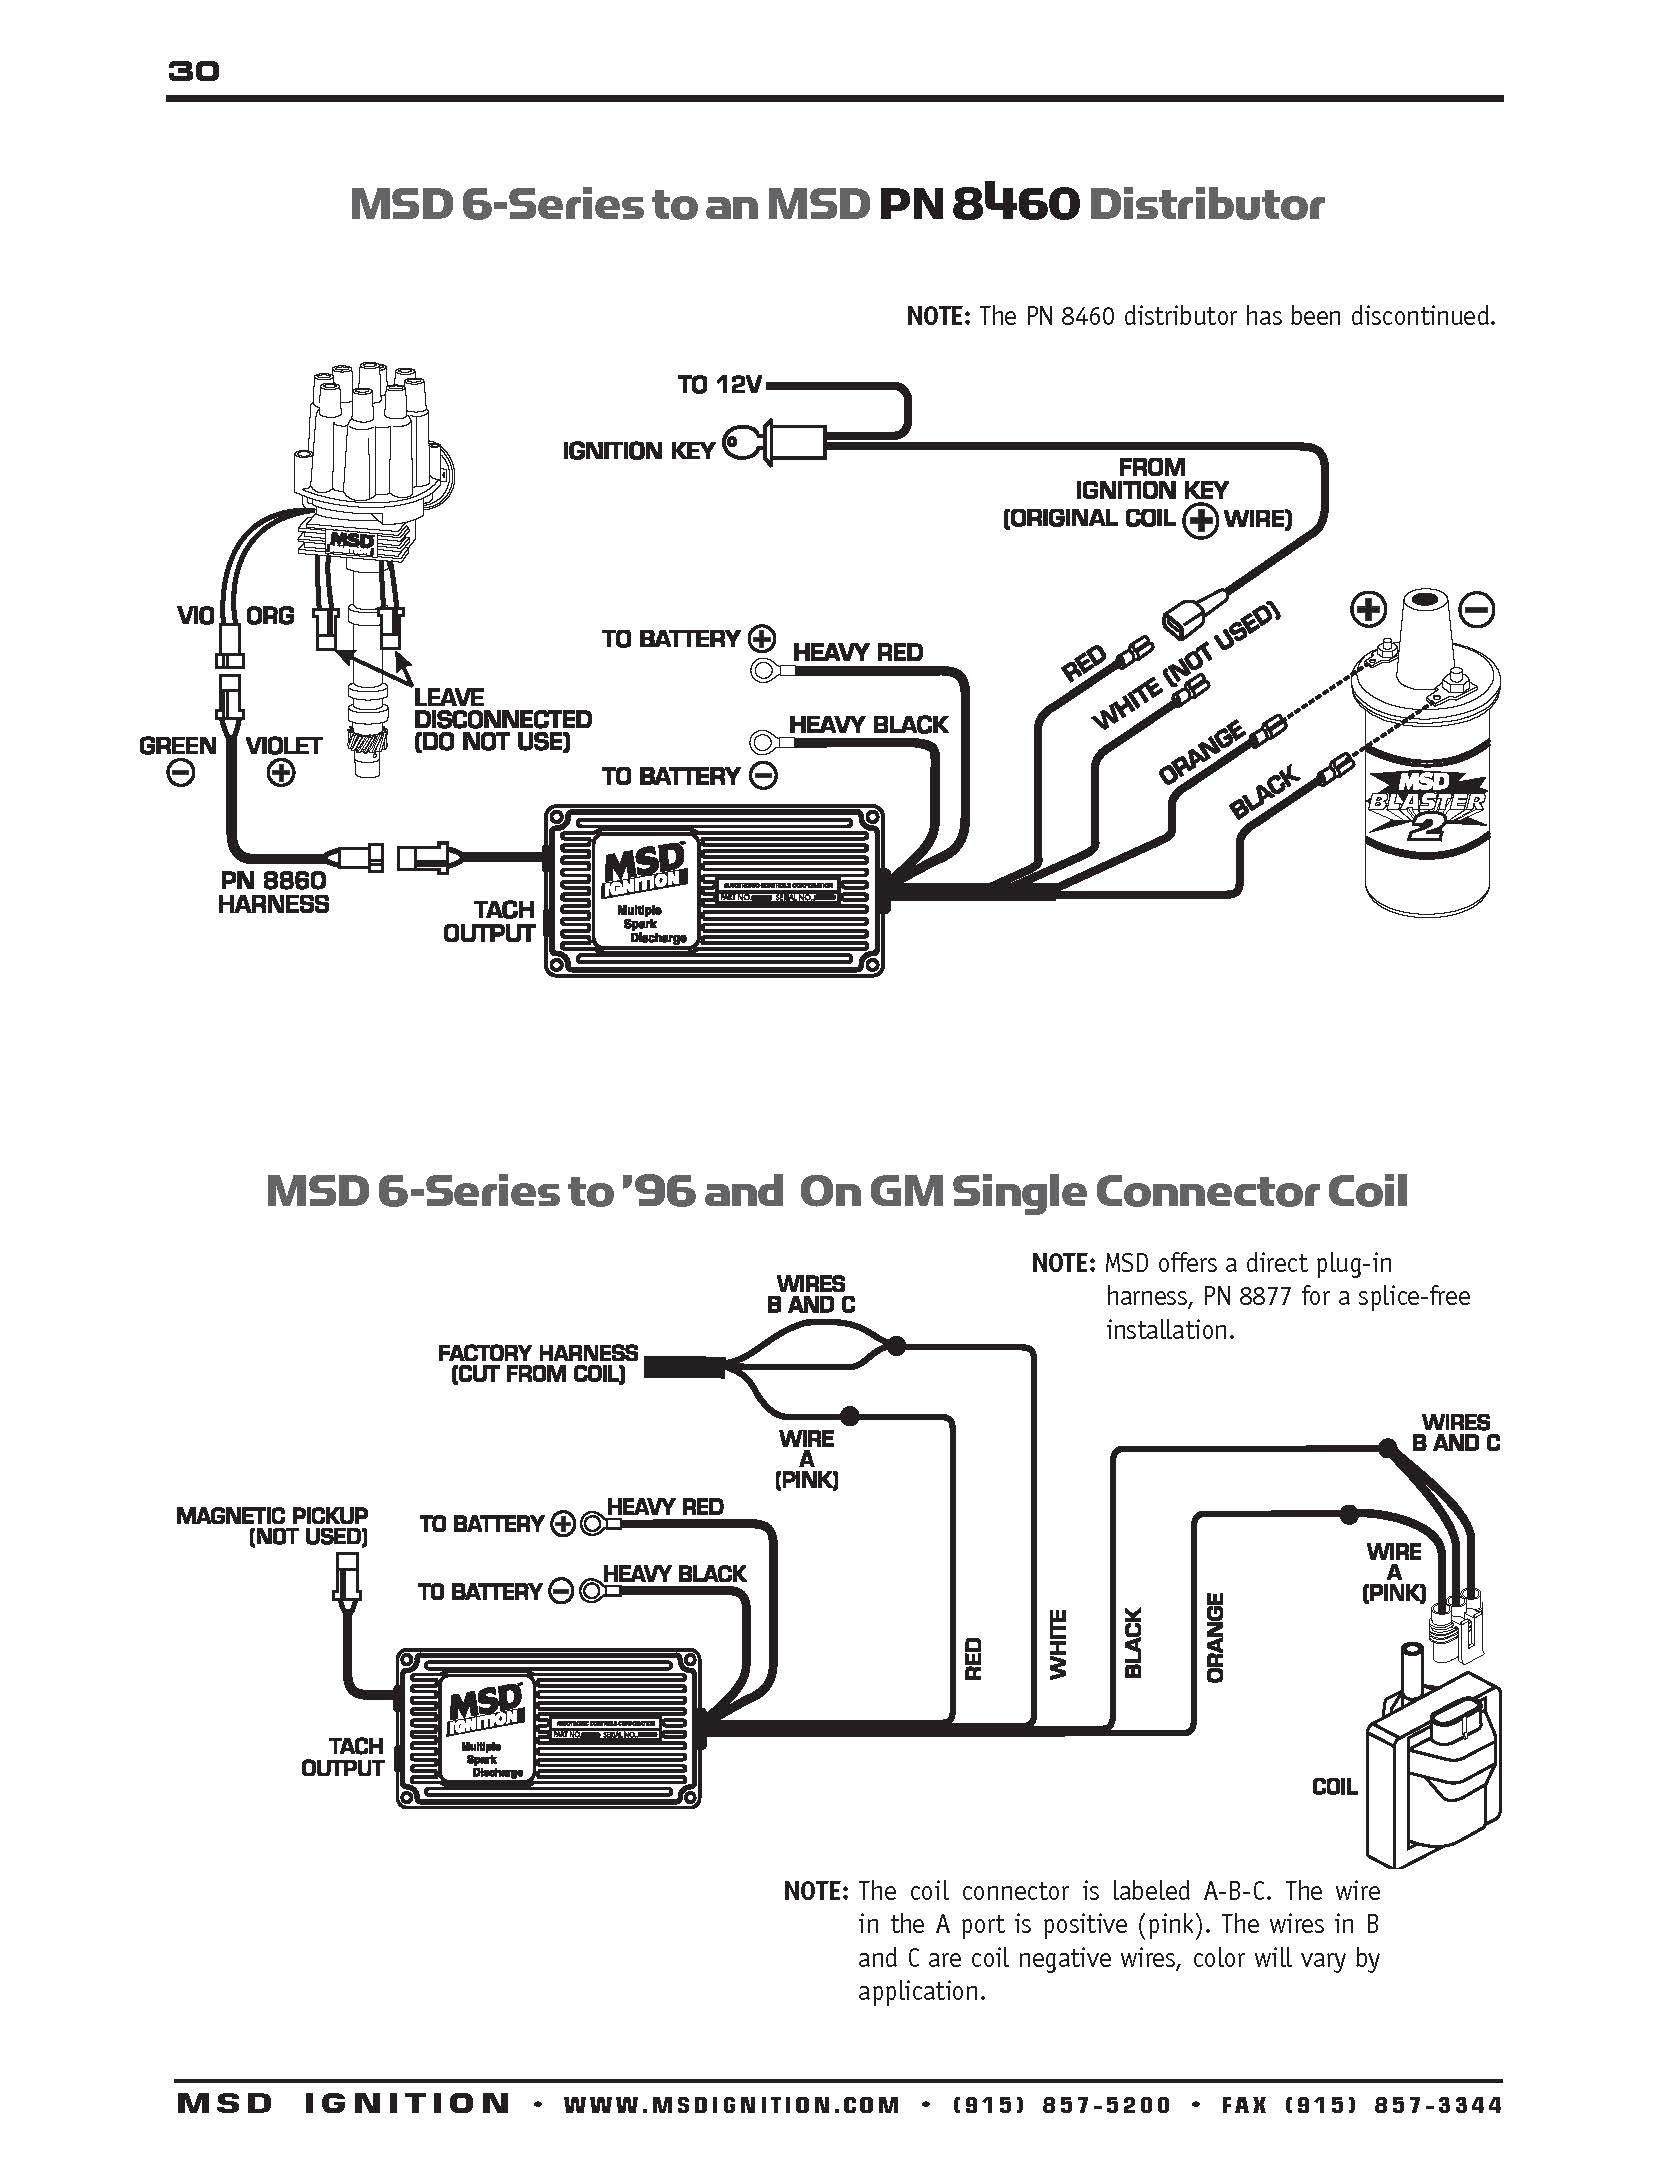 Hei Distributor Wiring Diagram Msd Distributor Wiring Diagram Elvenlabs Best Blurts Of Hei Distributor Wiring Diagram Msd Ignition Wiring Diagrams Throughout 6a Diagram to Distributor